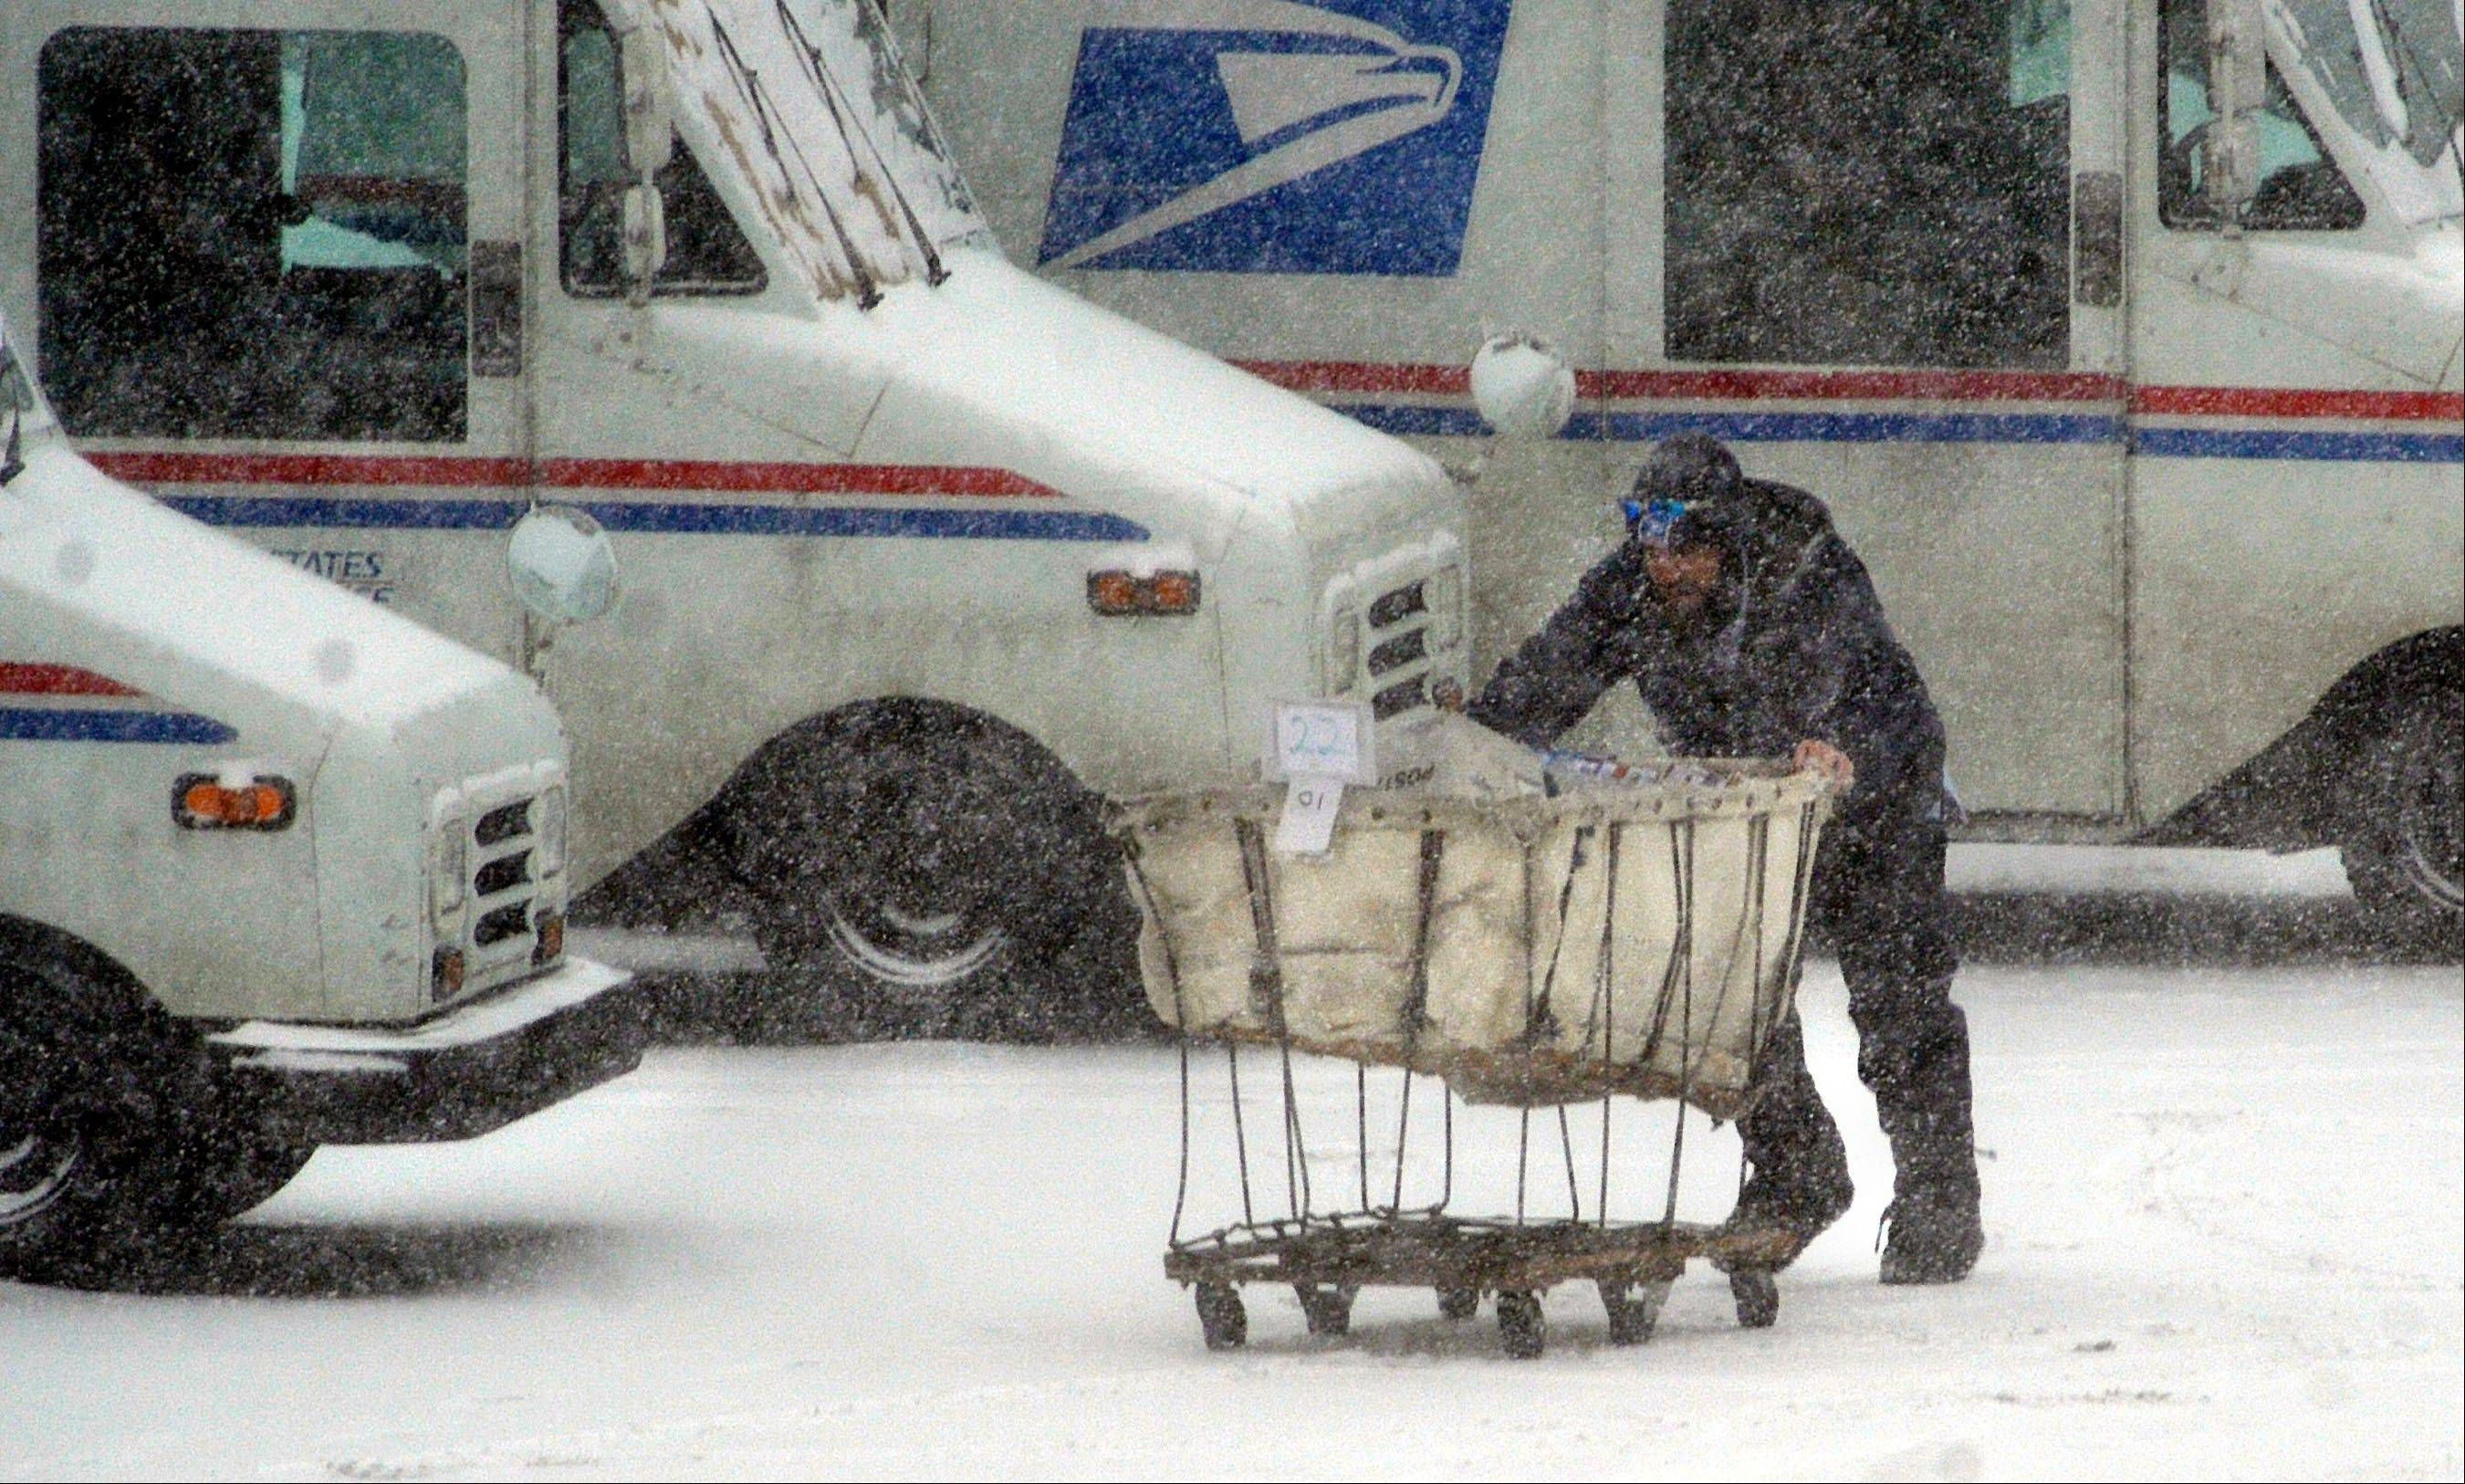 U.S. Postal Service employee Craig Conner tries to navigate a mail cart to his vehicle Thursday morning Feb. 21, 2013 in downtown St. Joseph, Mo., shortly after the snowstorm started. Winter storm warnings were issued from eastern Colorado through Illinois Thursday.